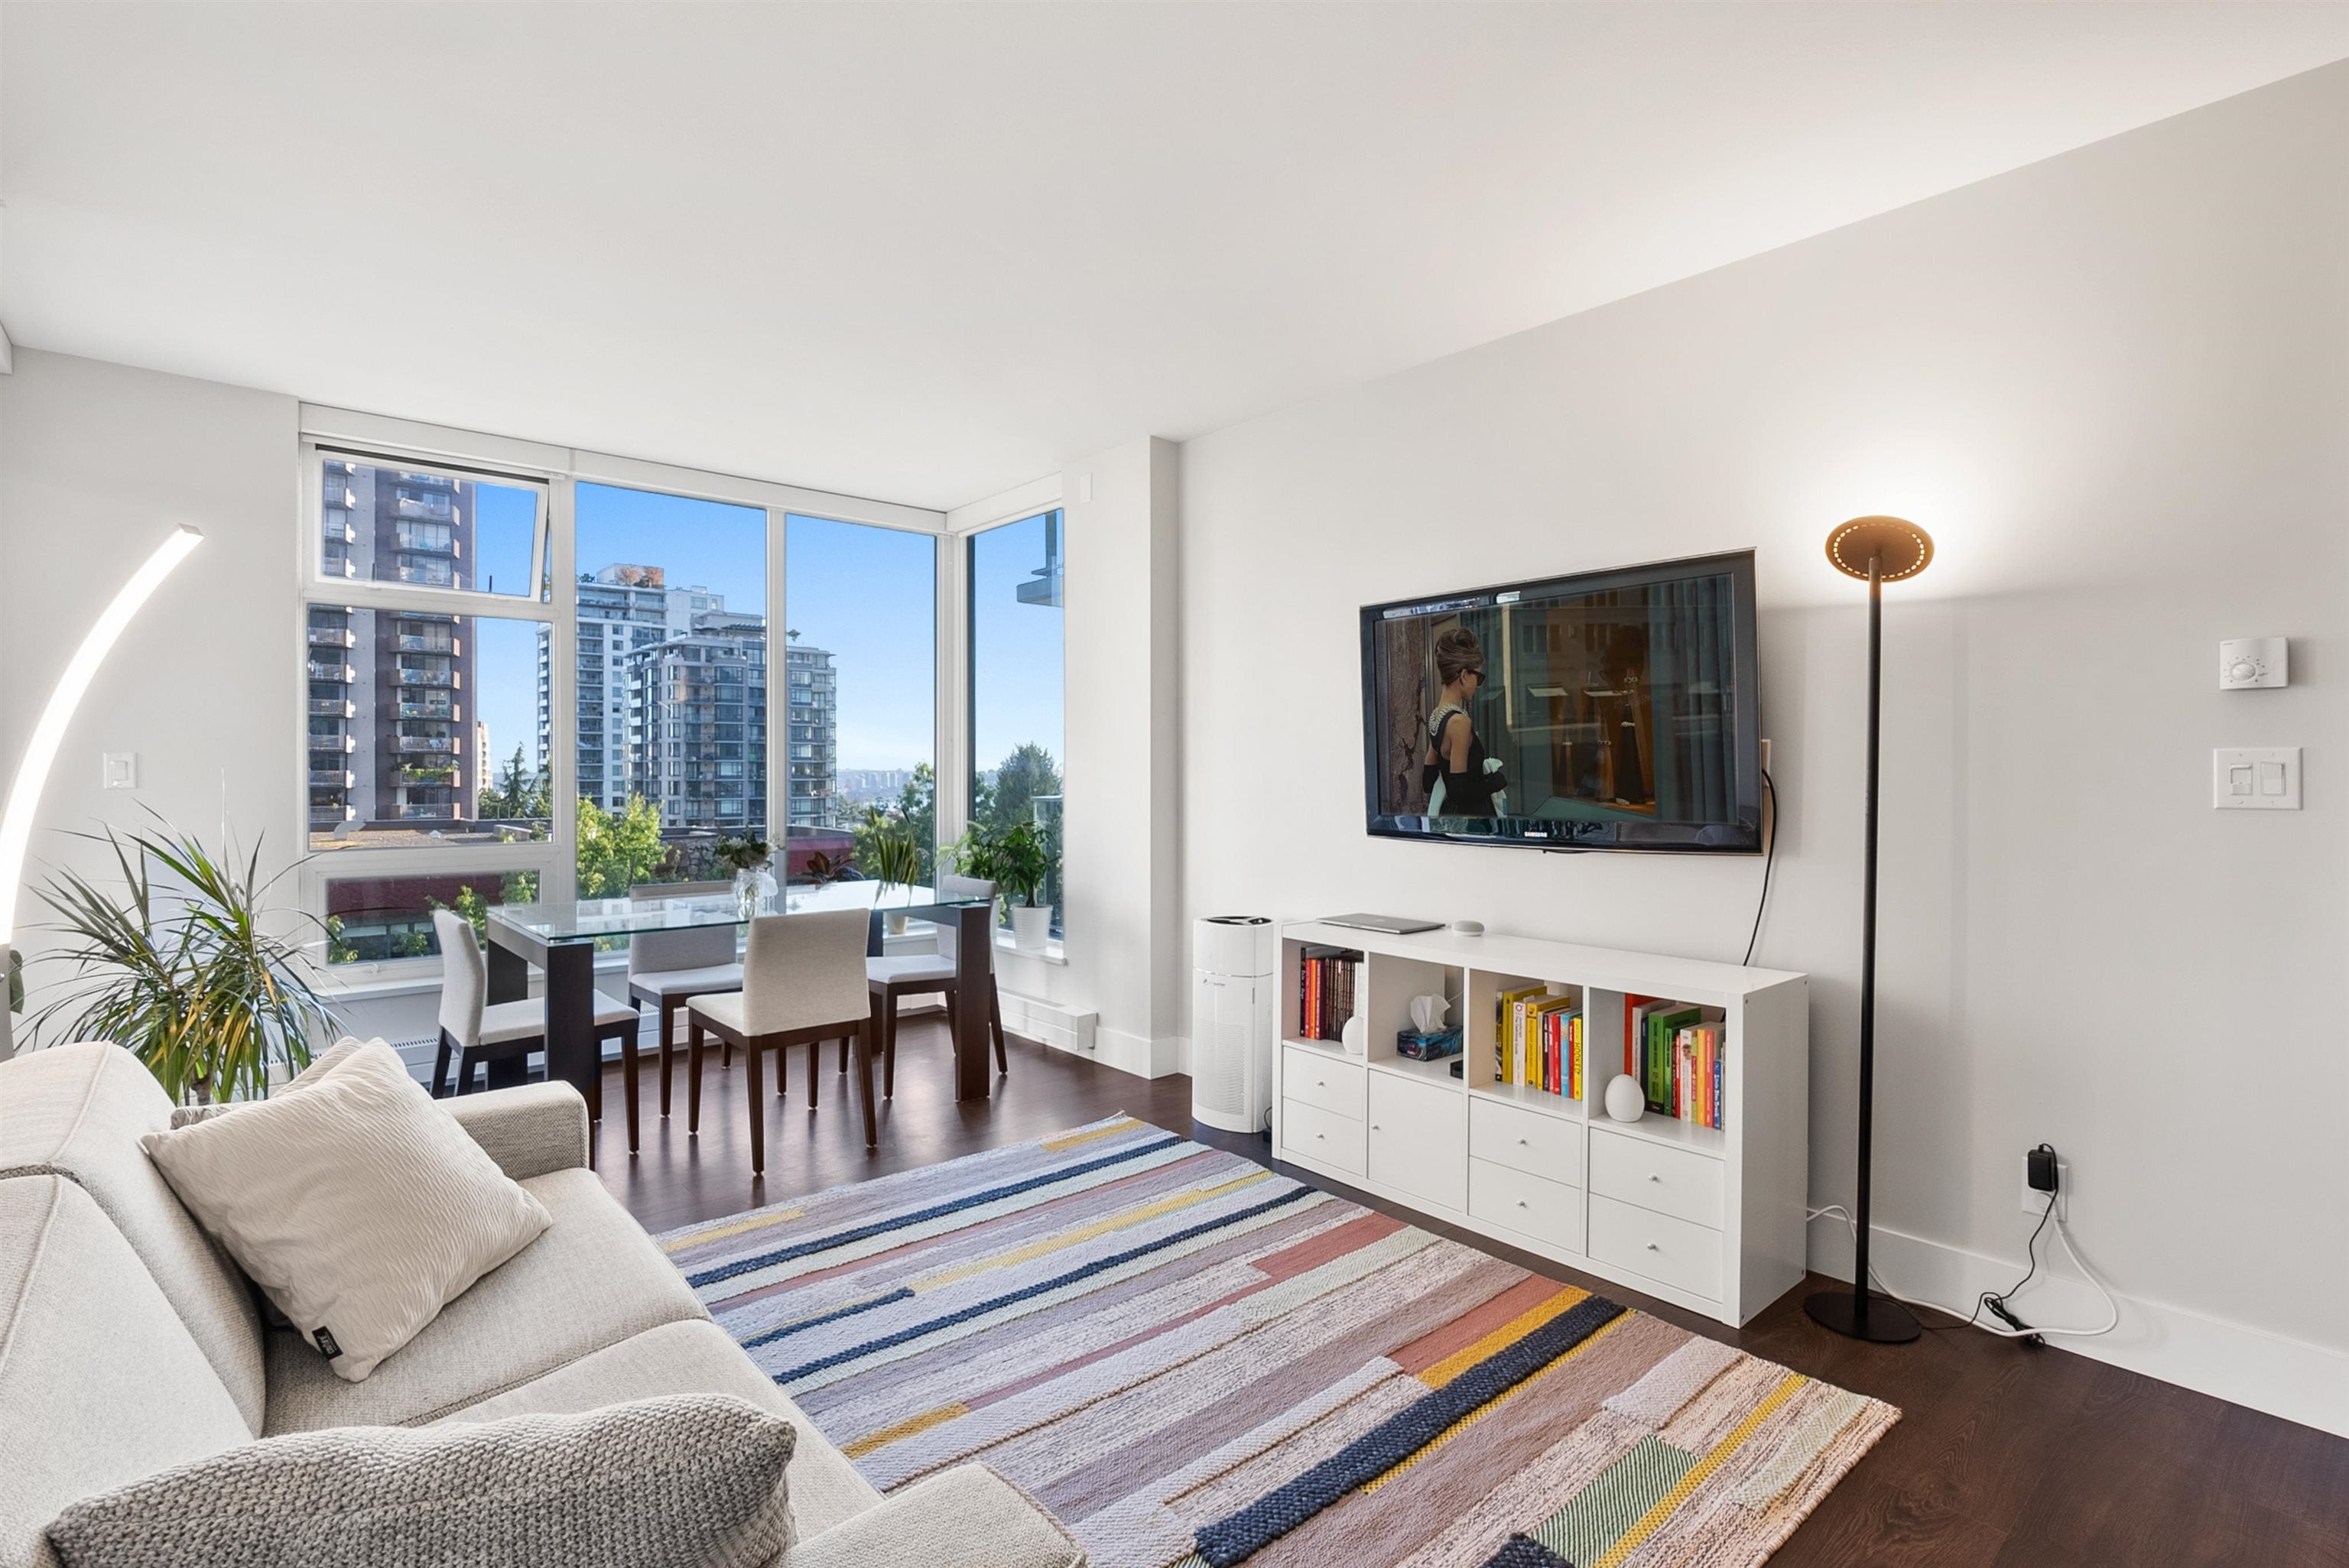 503 150 W 15TH STREET - Central Lonsdale Apartment/Condo for sale, 2 Bedrooms (R2624732) - #3